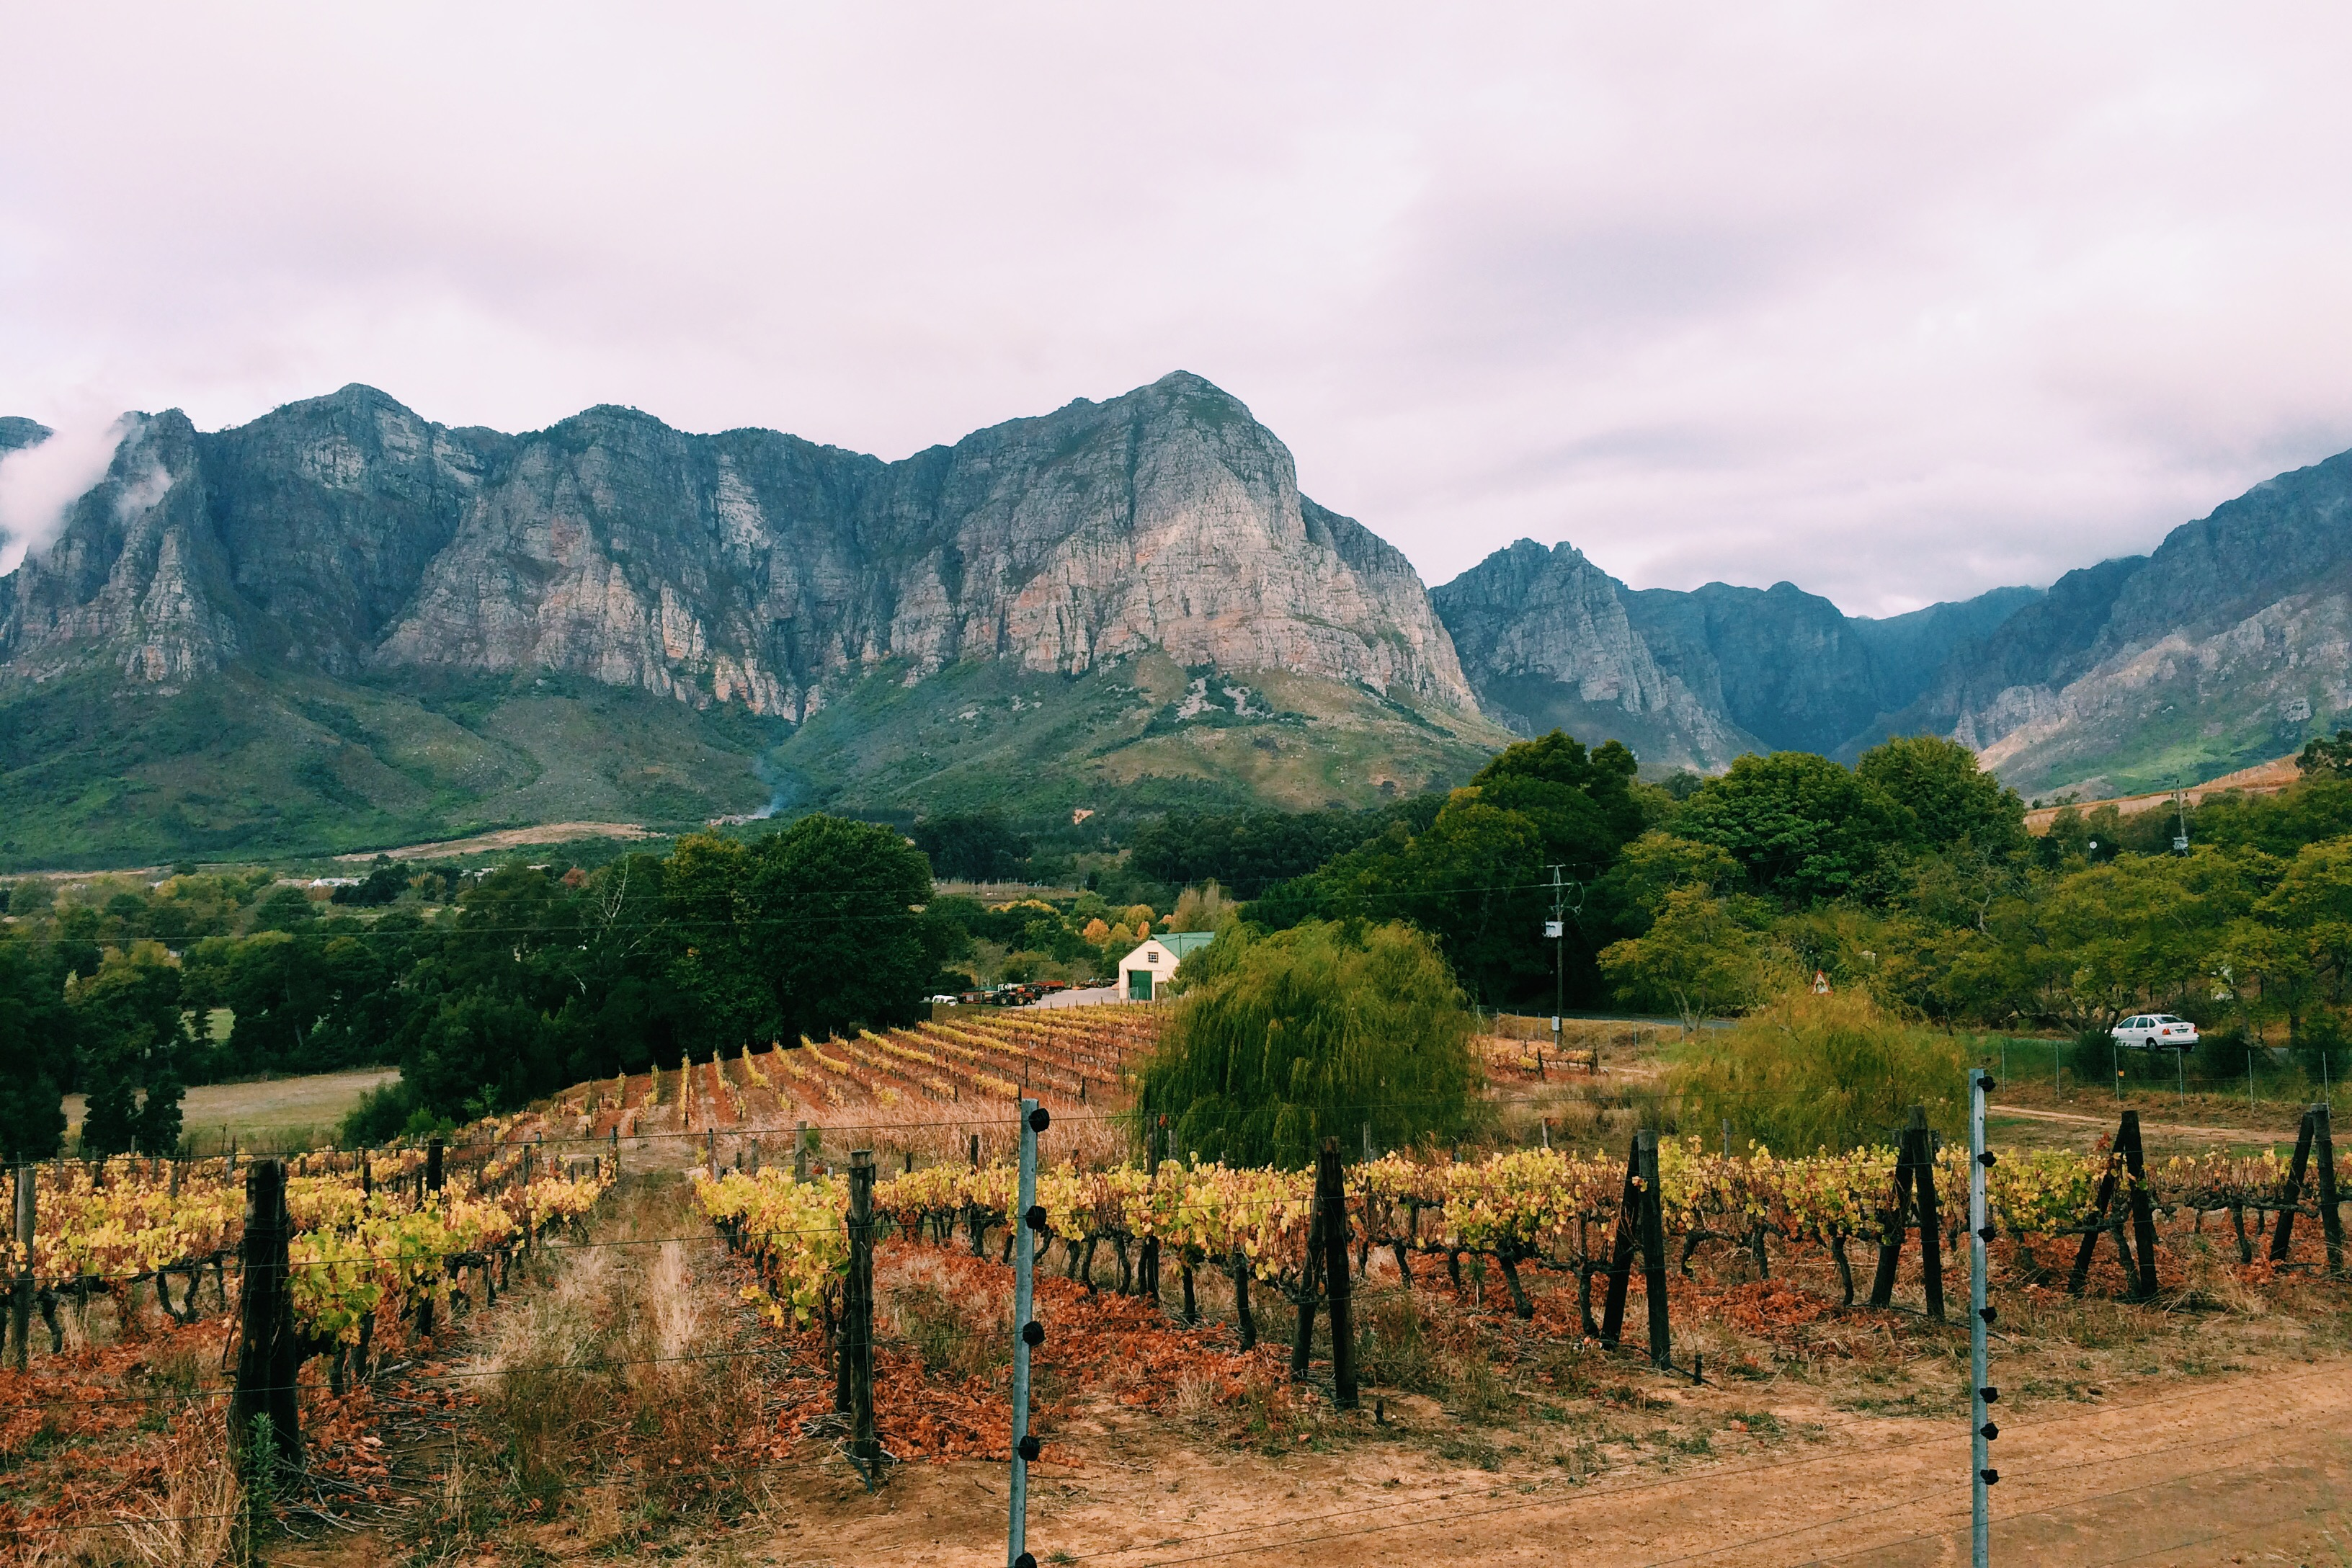 Staying in Stellenbosch: Where to Stay in The Winelands